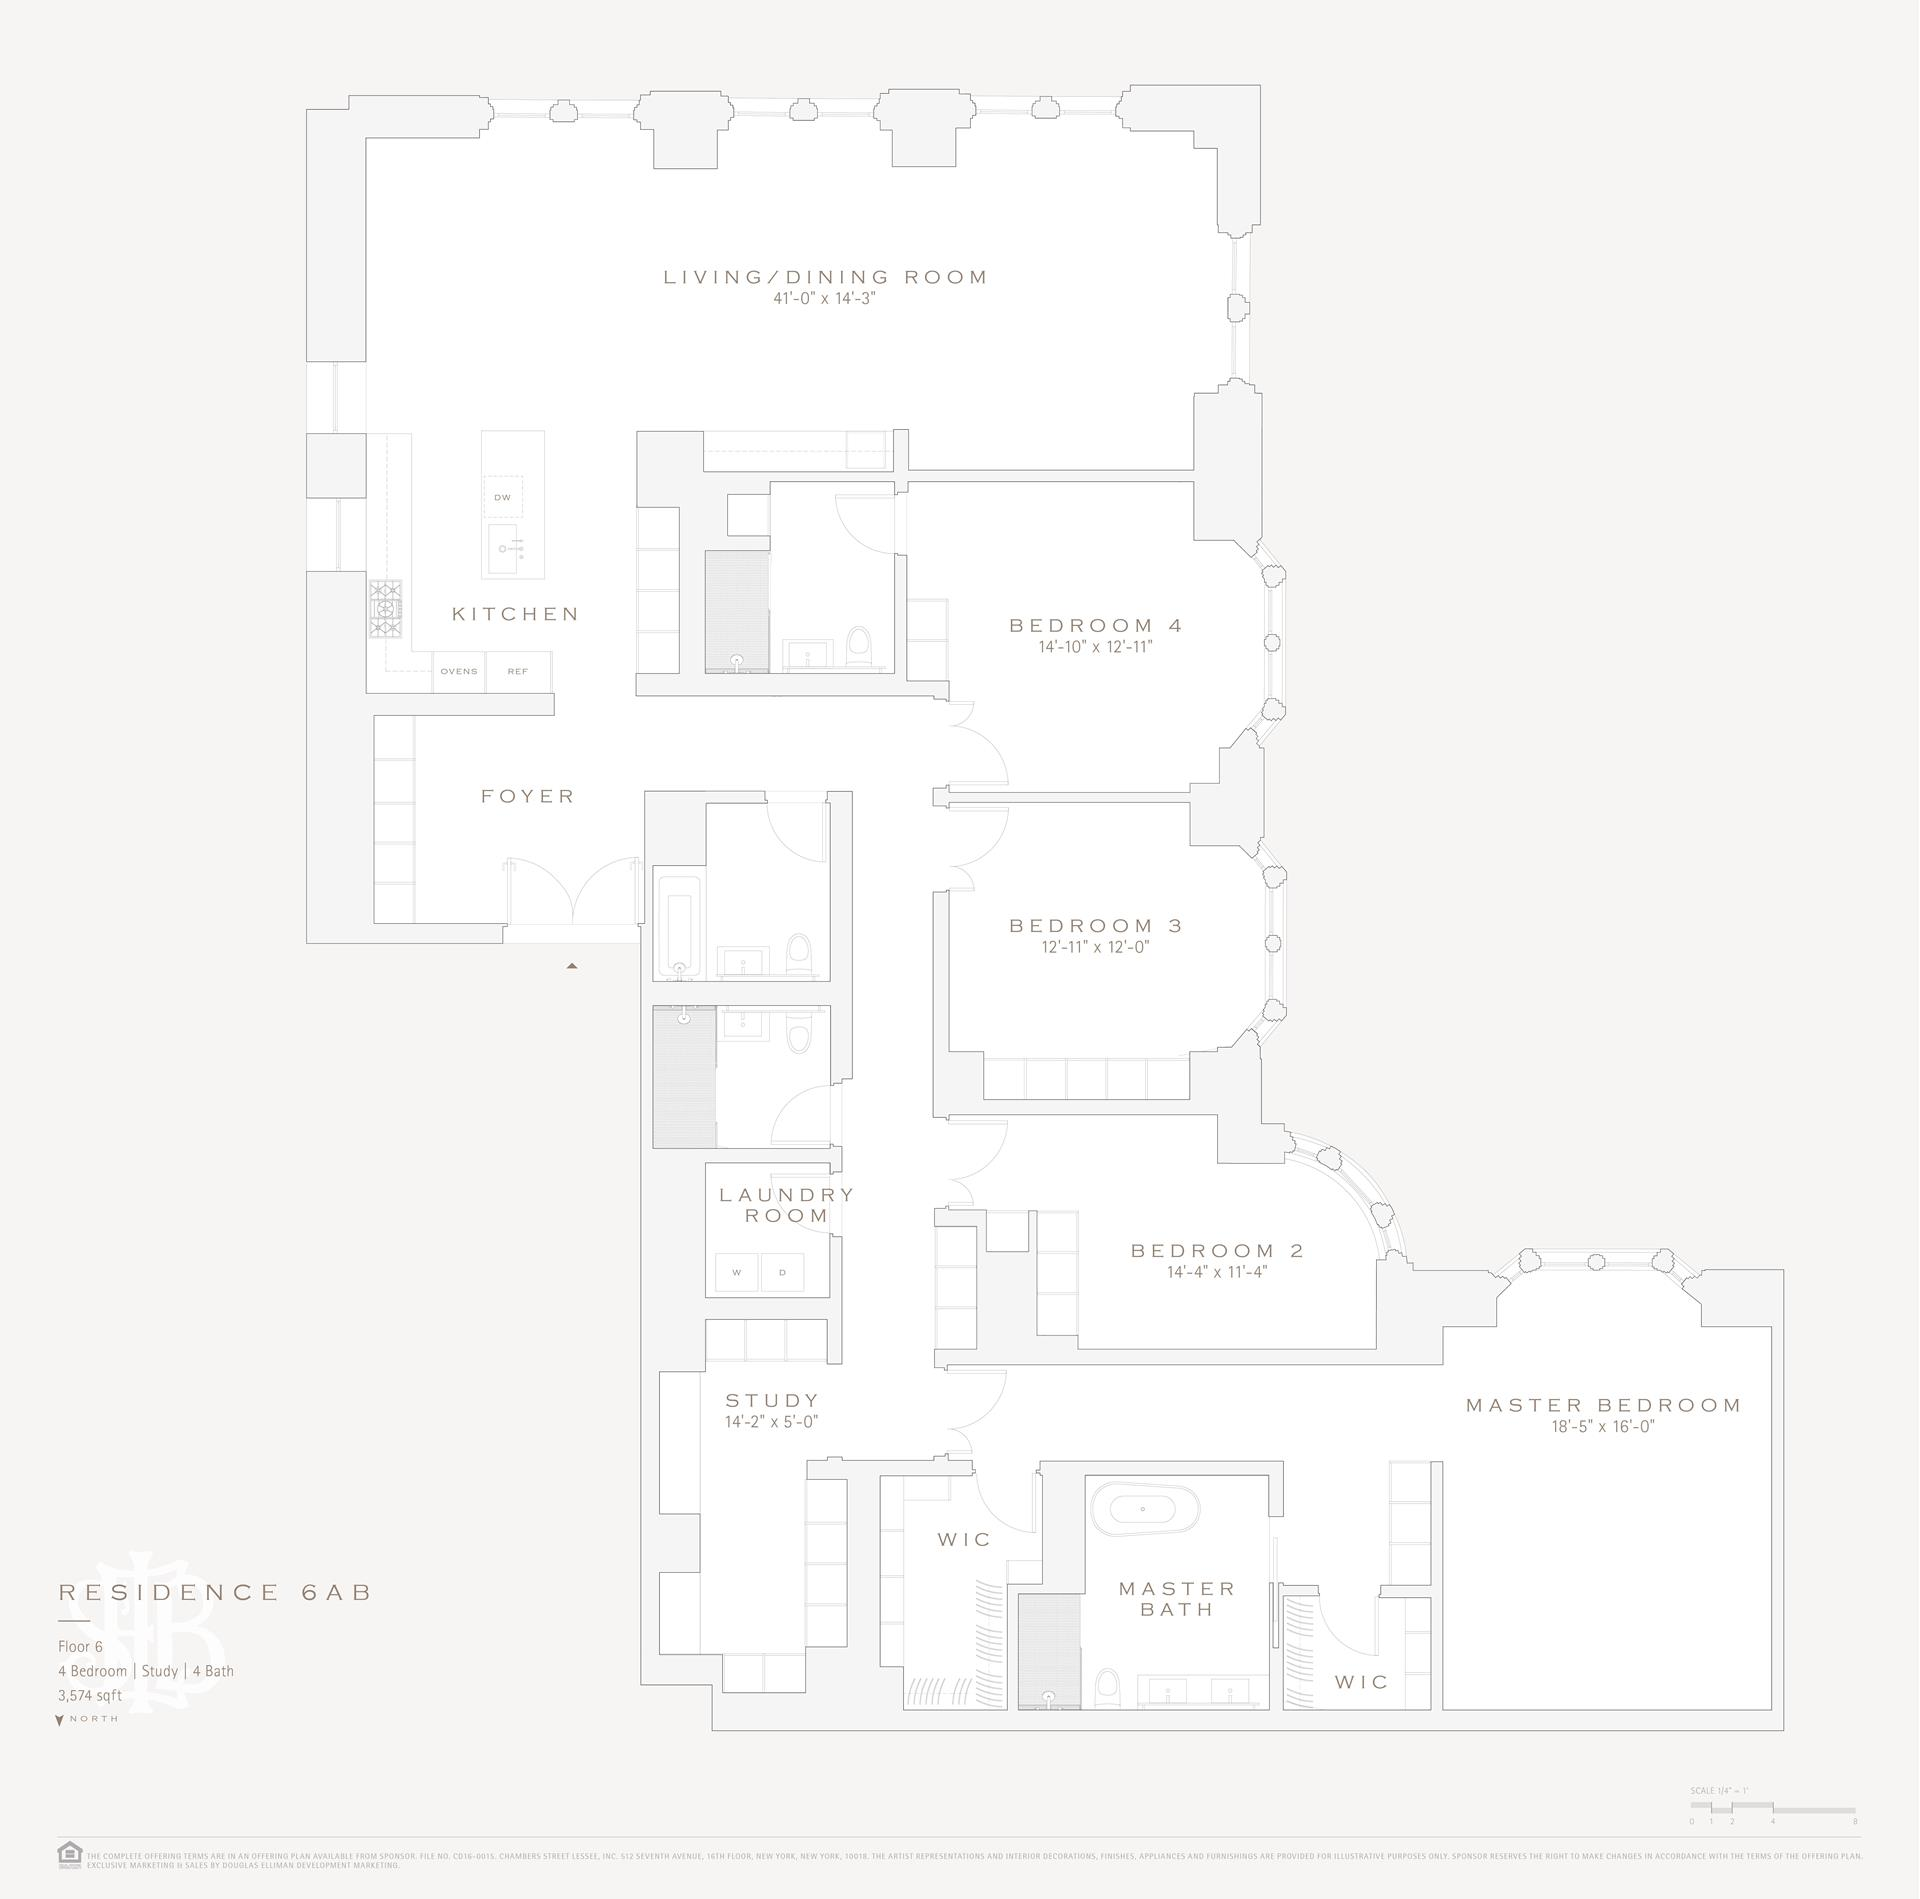 Floor plan of 49 Chambers St, 6AB - TriBeCa, New York